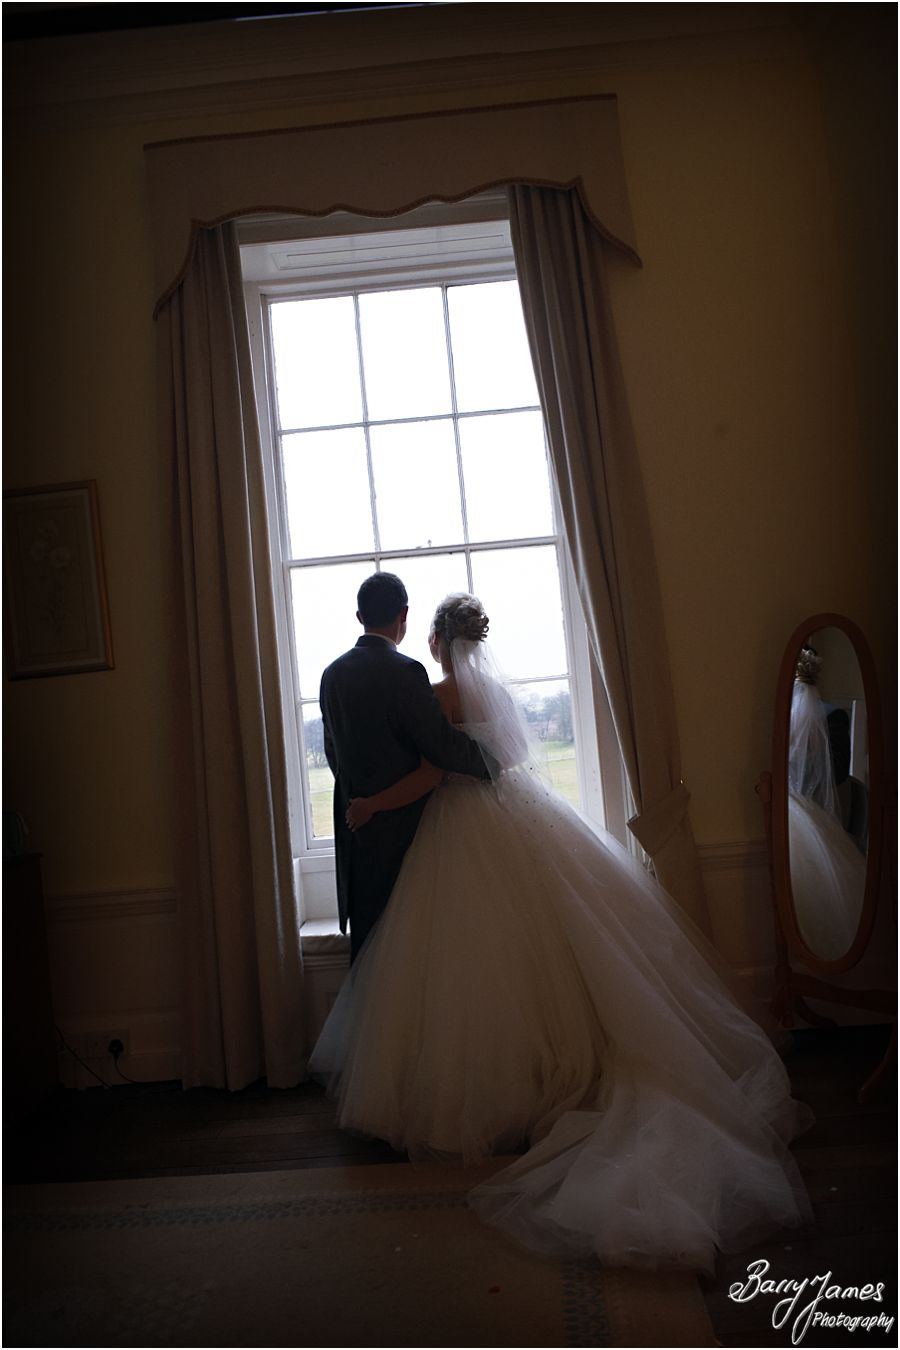 Natural storytelling wedding photography of a Somerford Hall weddings in Brewood by Professional Wedding Photographer Barry James